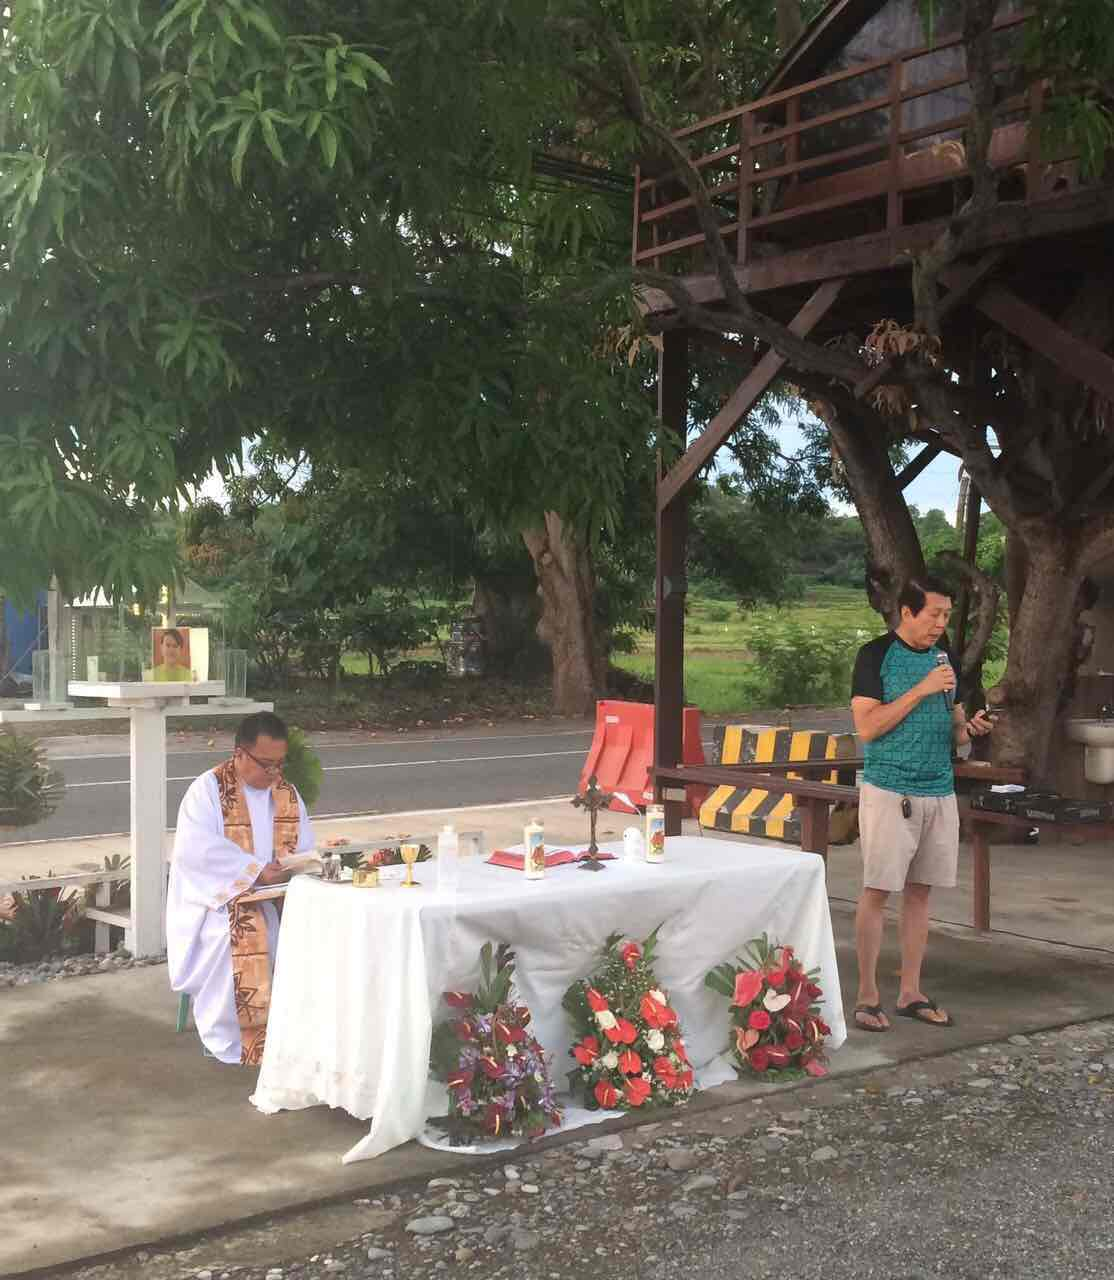 A FATHER'S PROMISE. Fariu00f1as speaks during a Mass held in memory of JR on June 11. Behind Fariu00f1as is the treehouse he made in honor of his late son. Photo courtesy of Fariu00f1as